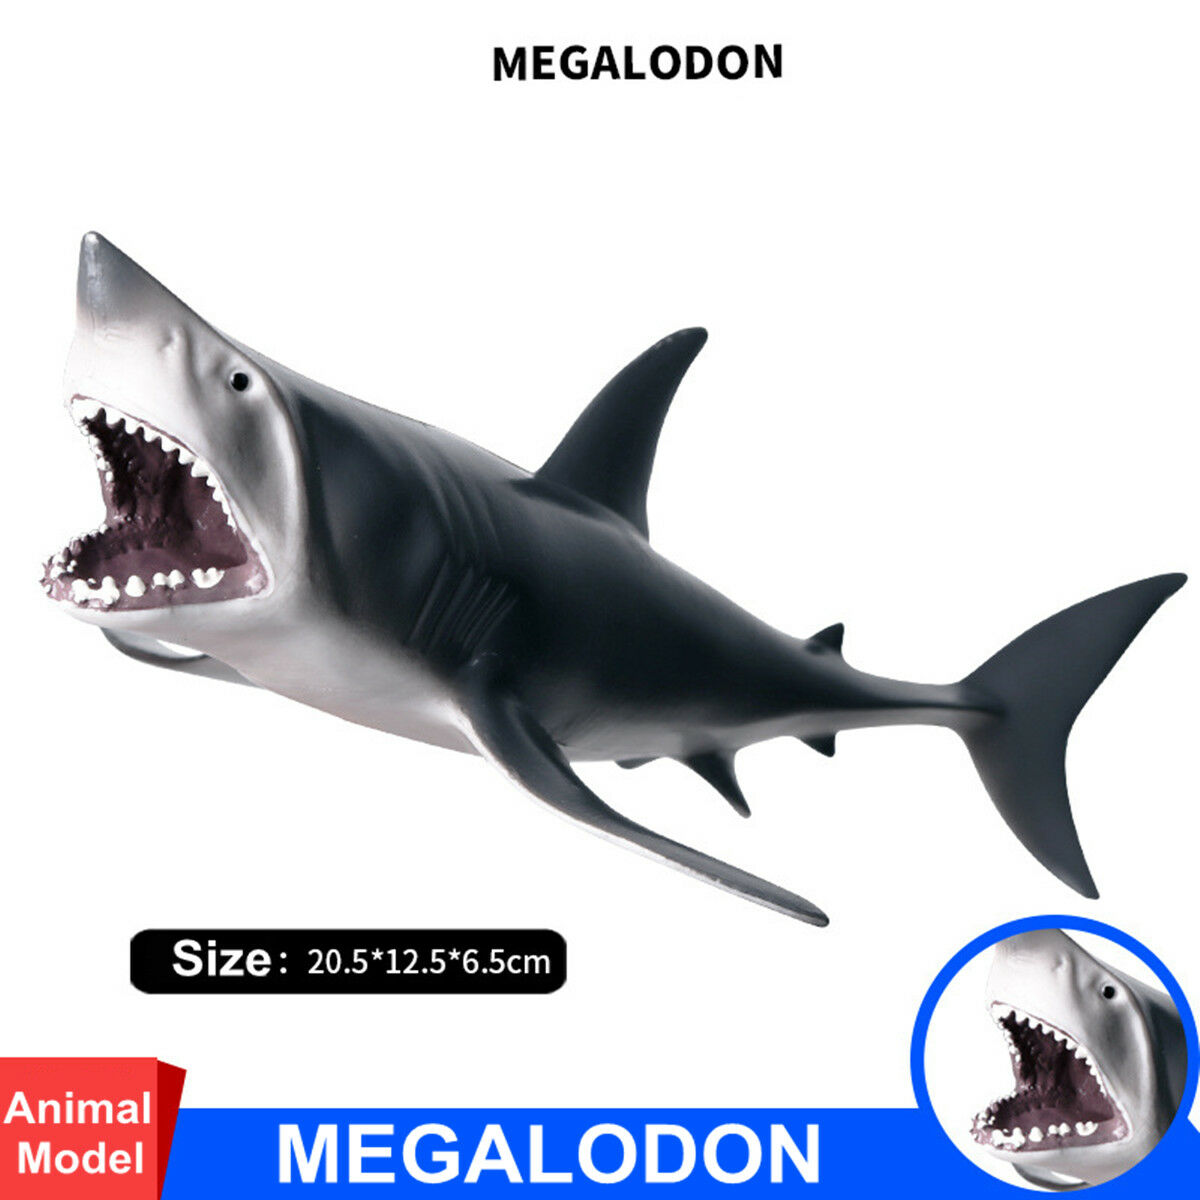 Rare Megalodon Figure Ancient Shark Whale Wild Animal Model Adult Kids Collection Science Education Toys Gift Home Decor